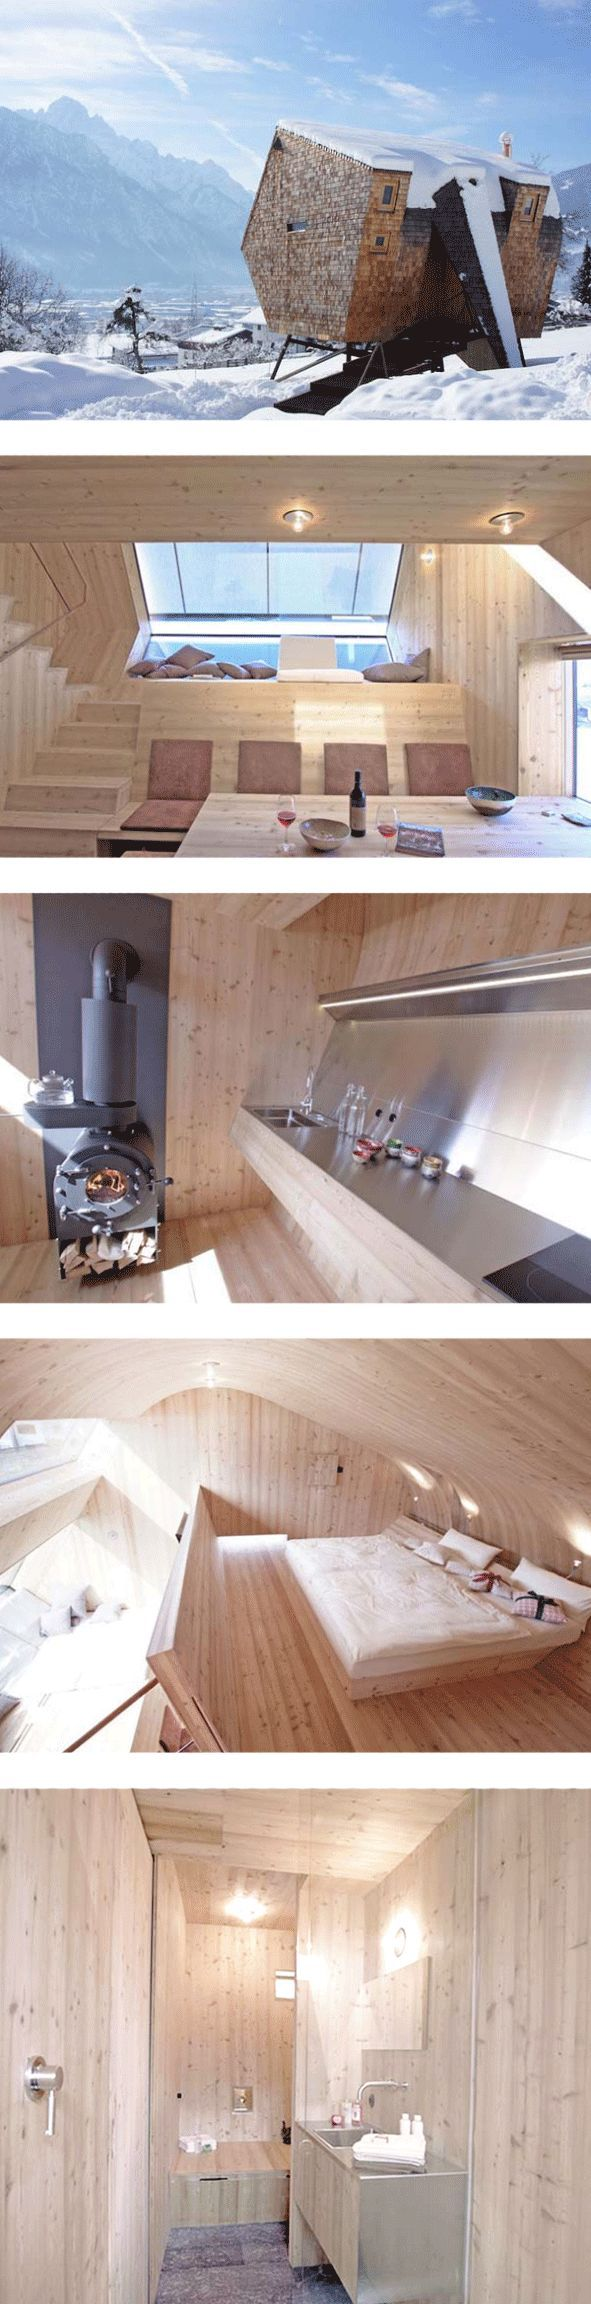 A 484 sq ft minimalist home with breathtaking panoramic views, exposed wood, and lots of natural light. The Uvogel by Peter Jungmann. | Tiny Homes